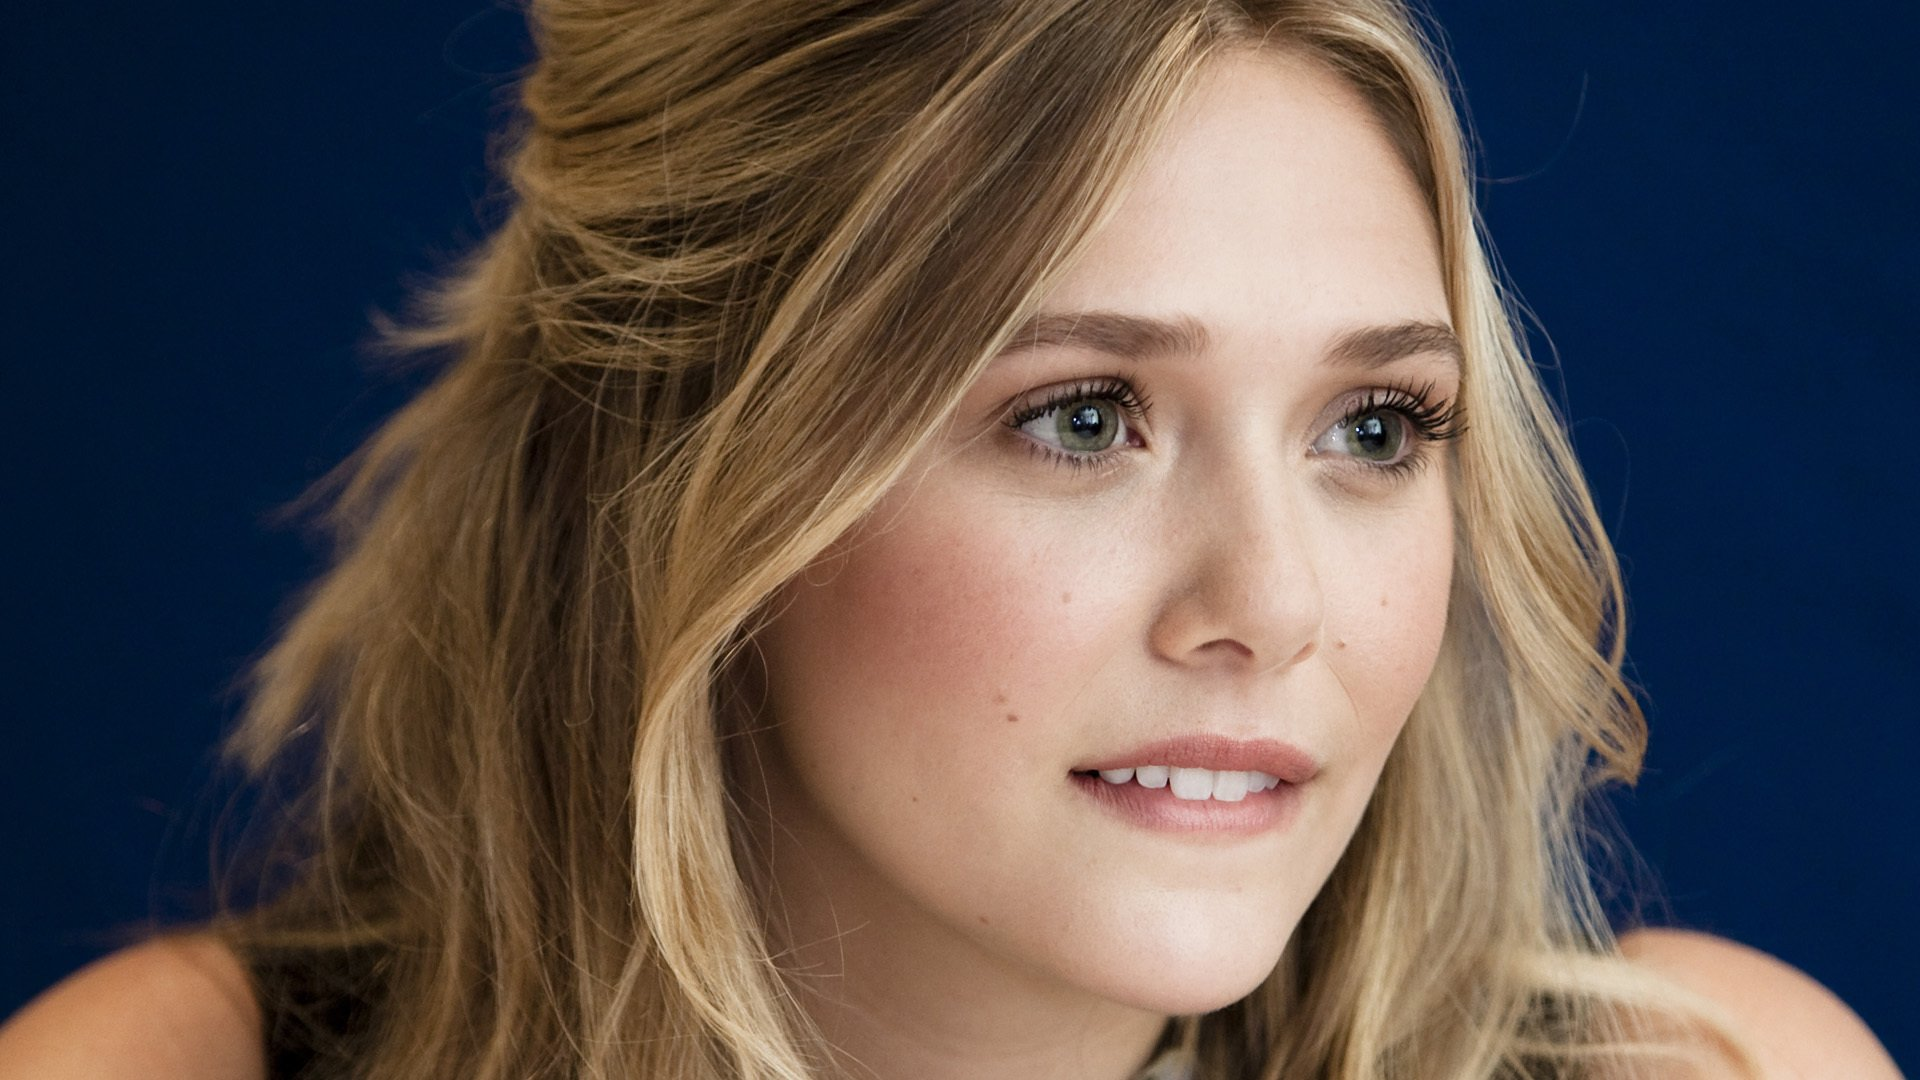 Elizabeth Olsen Wallpapers Images Photos Pictures Backgrounds 1920x1080